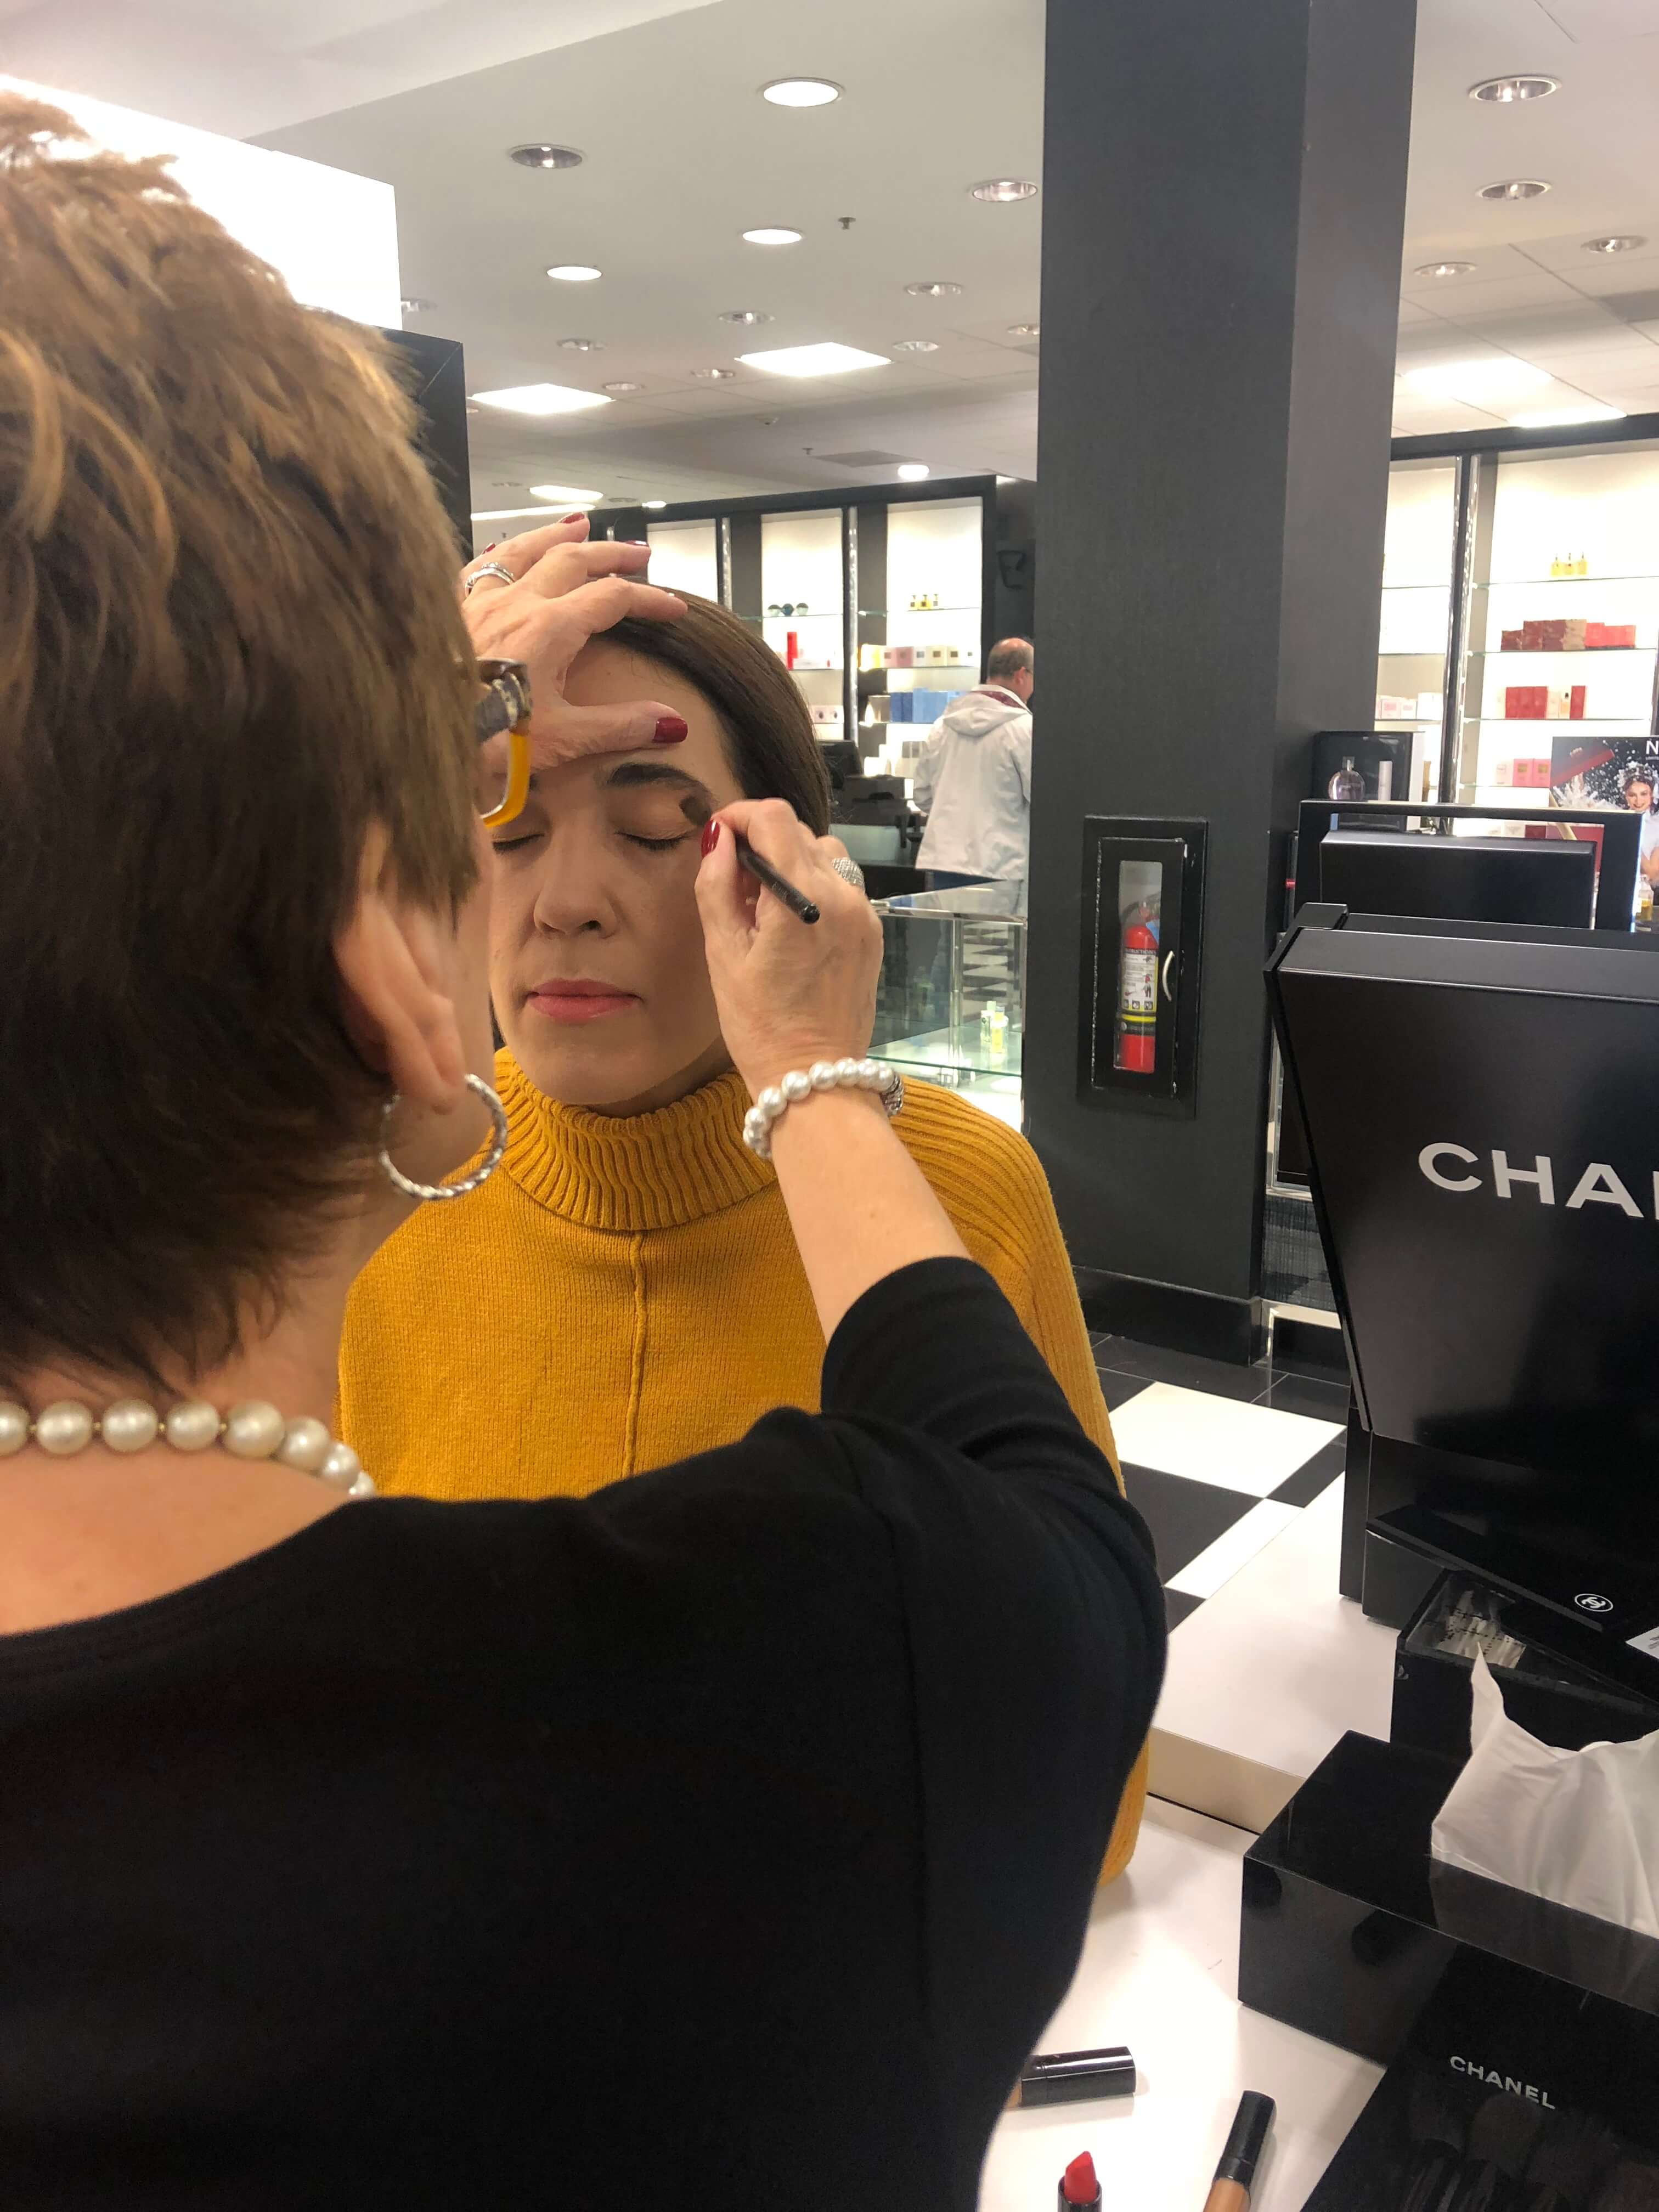 makeup from Chanel personal styling